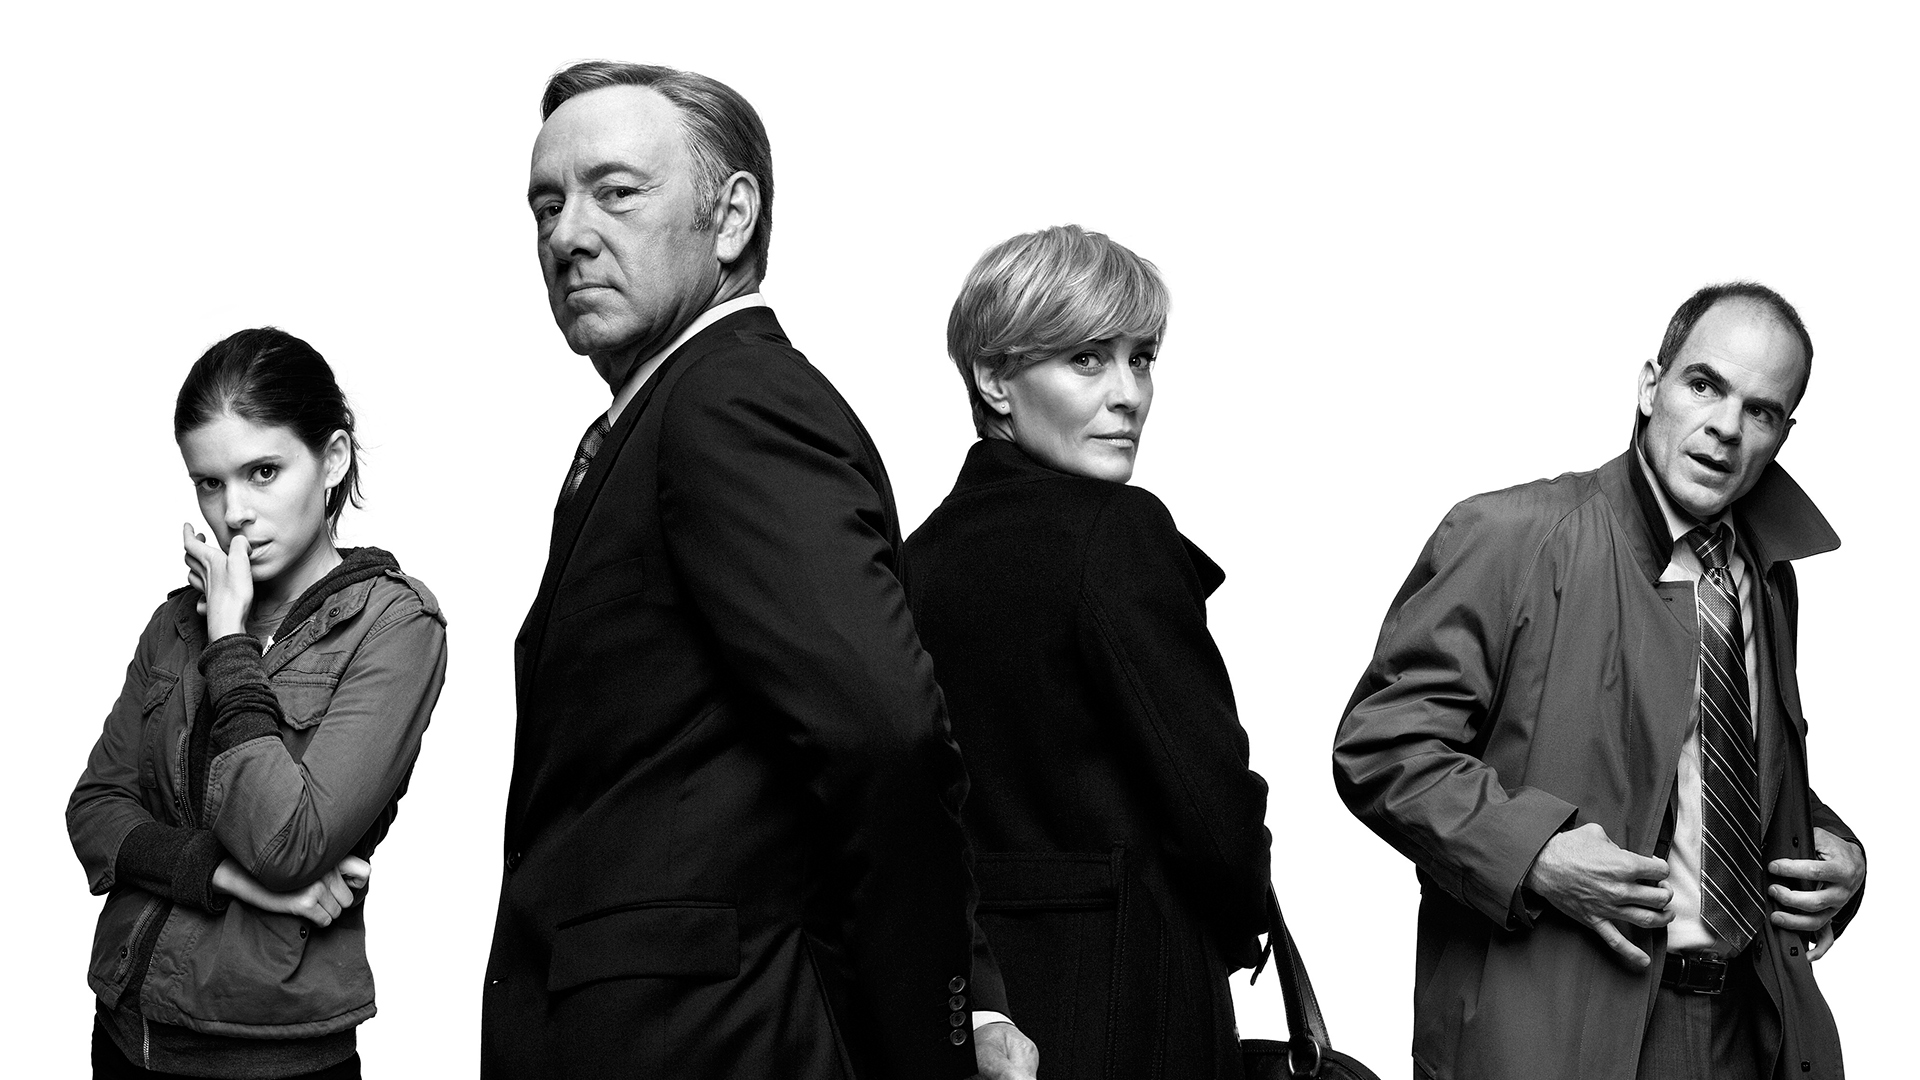 The Cast from the House Of Cards. Image Credit: TVDinnerAndAMovie